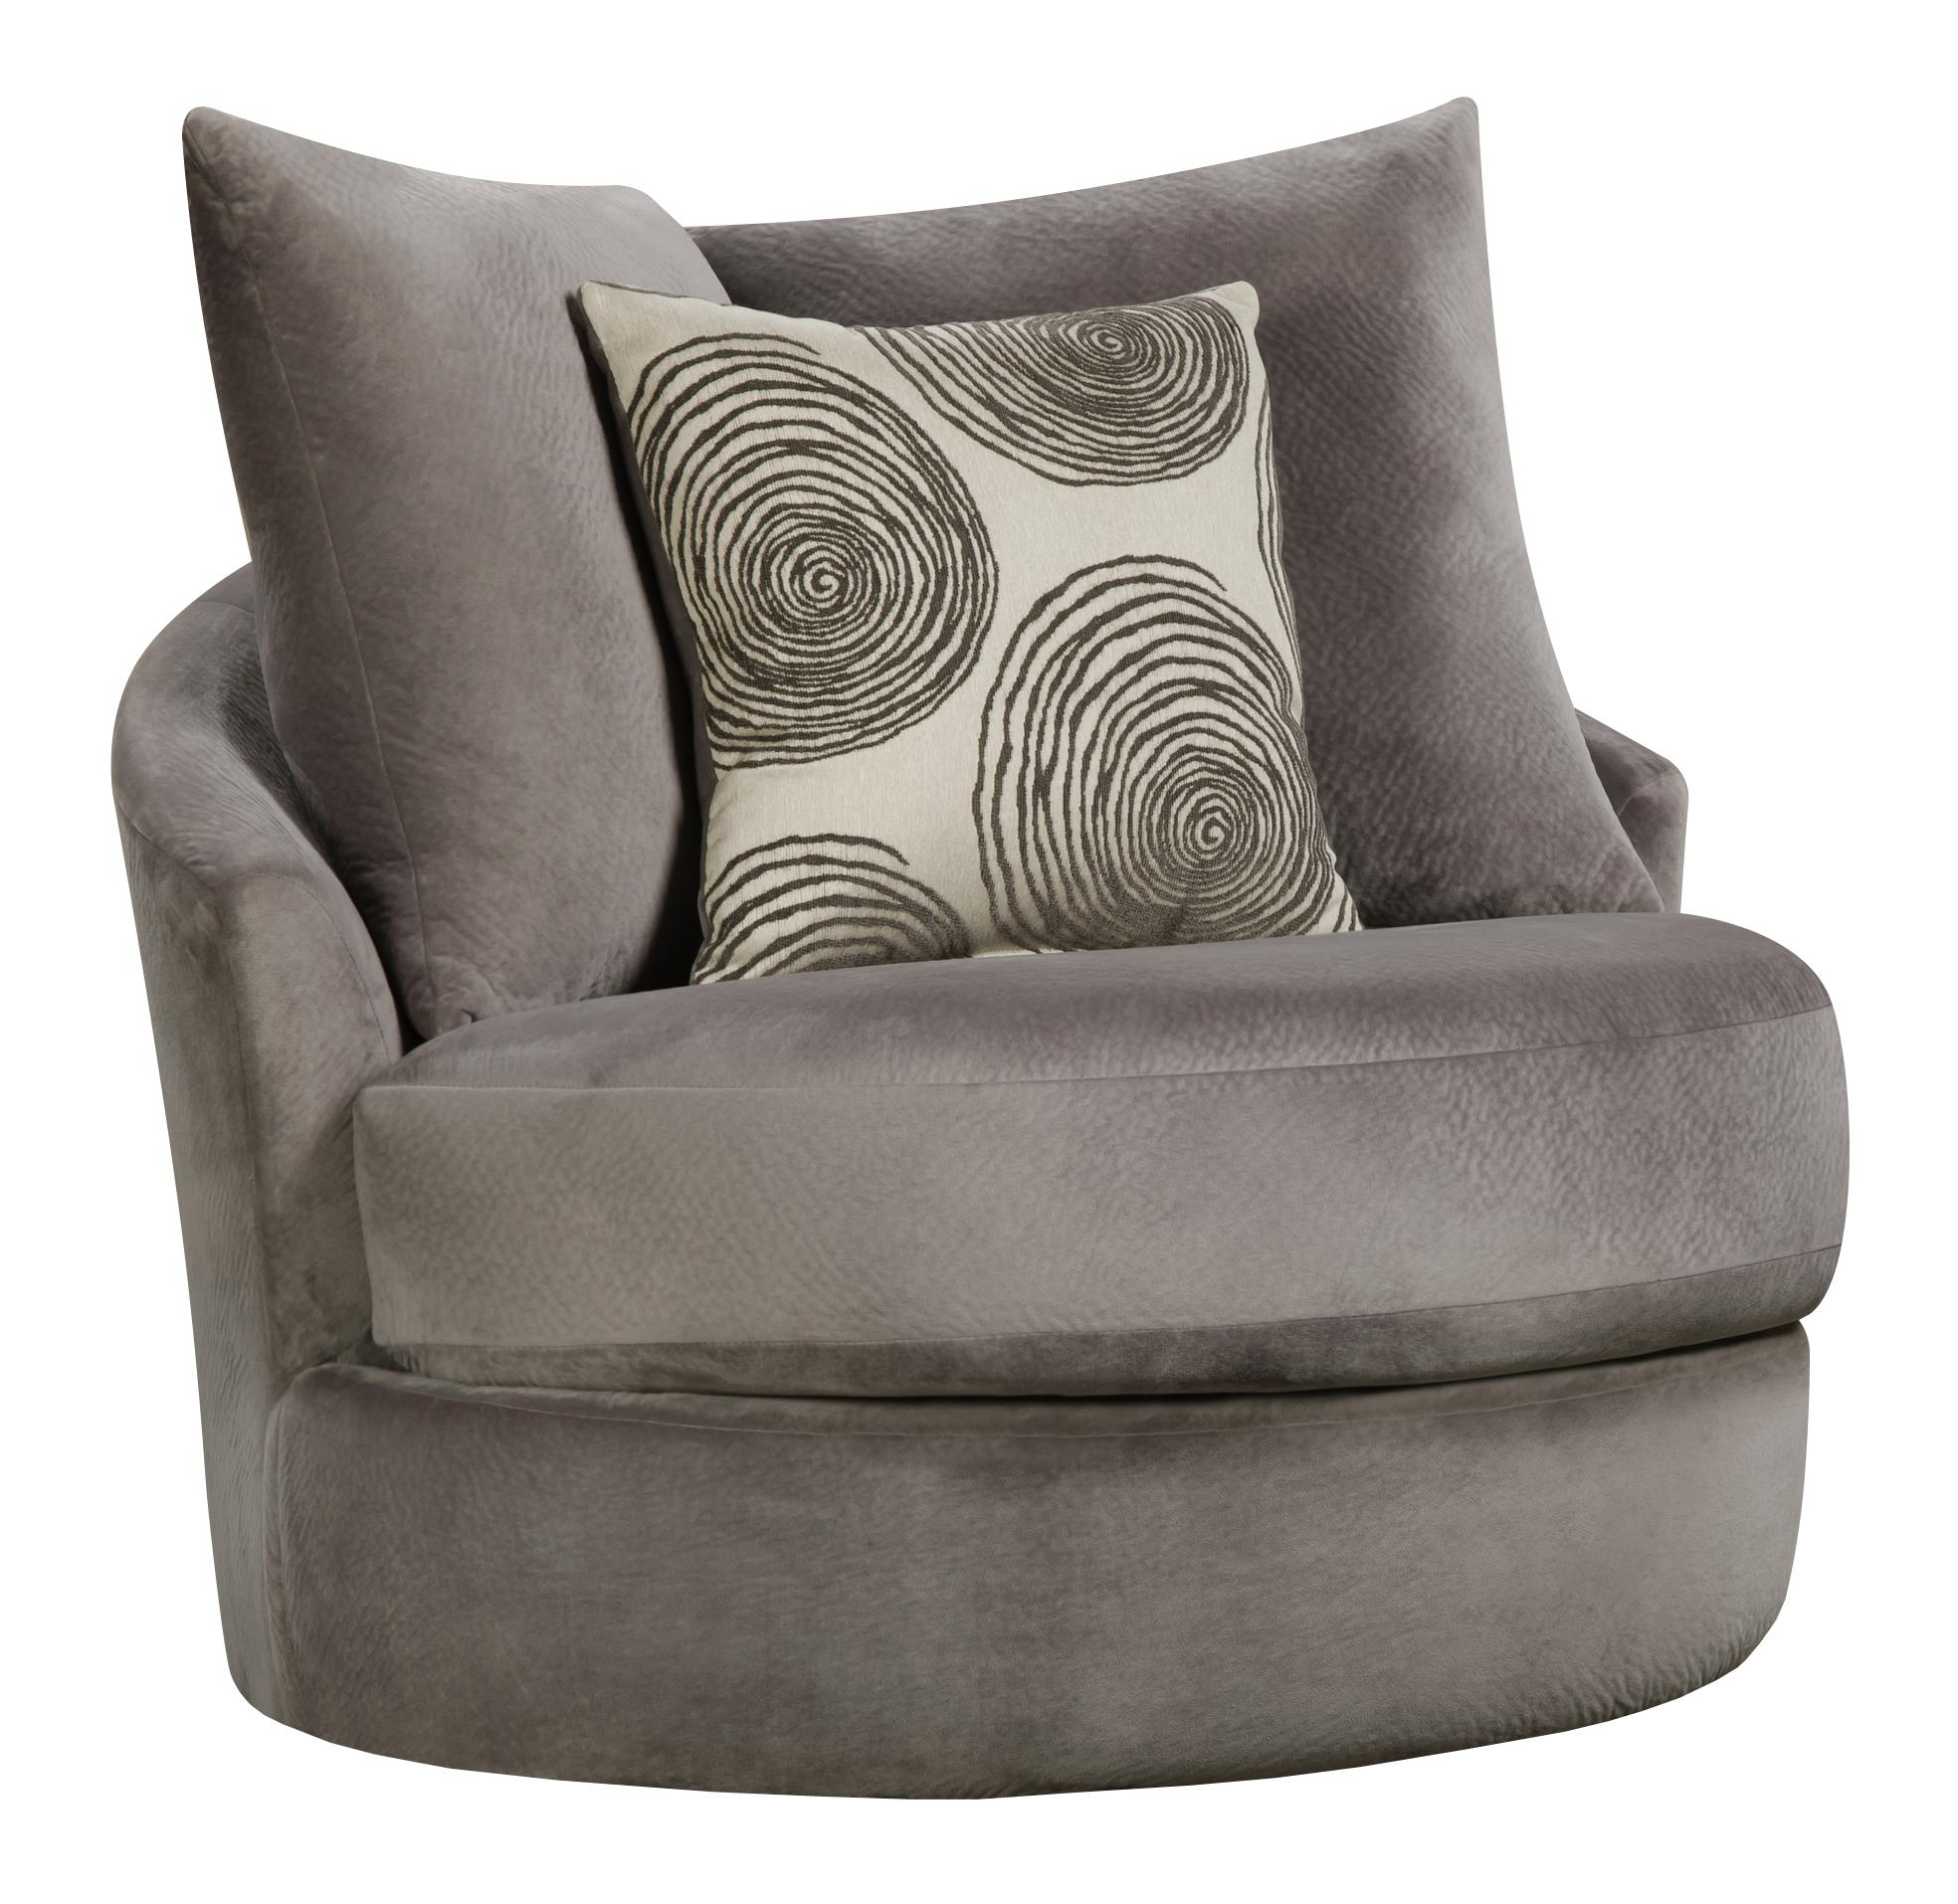 contemporary style furniture. Swivel Chair With Contemporary Style Furniture F